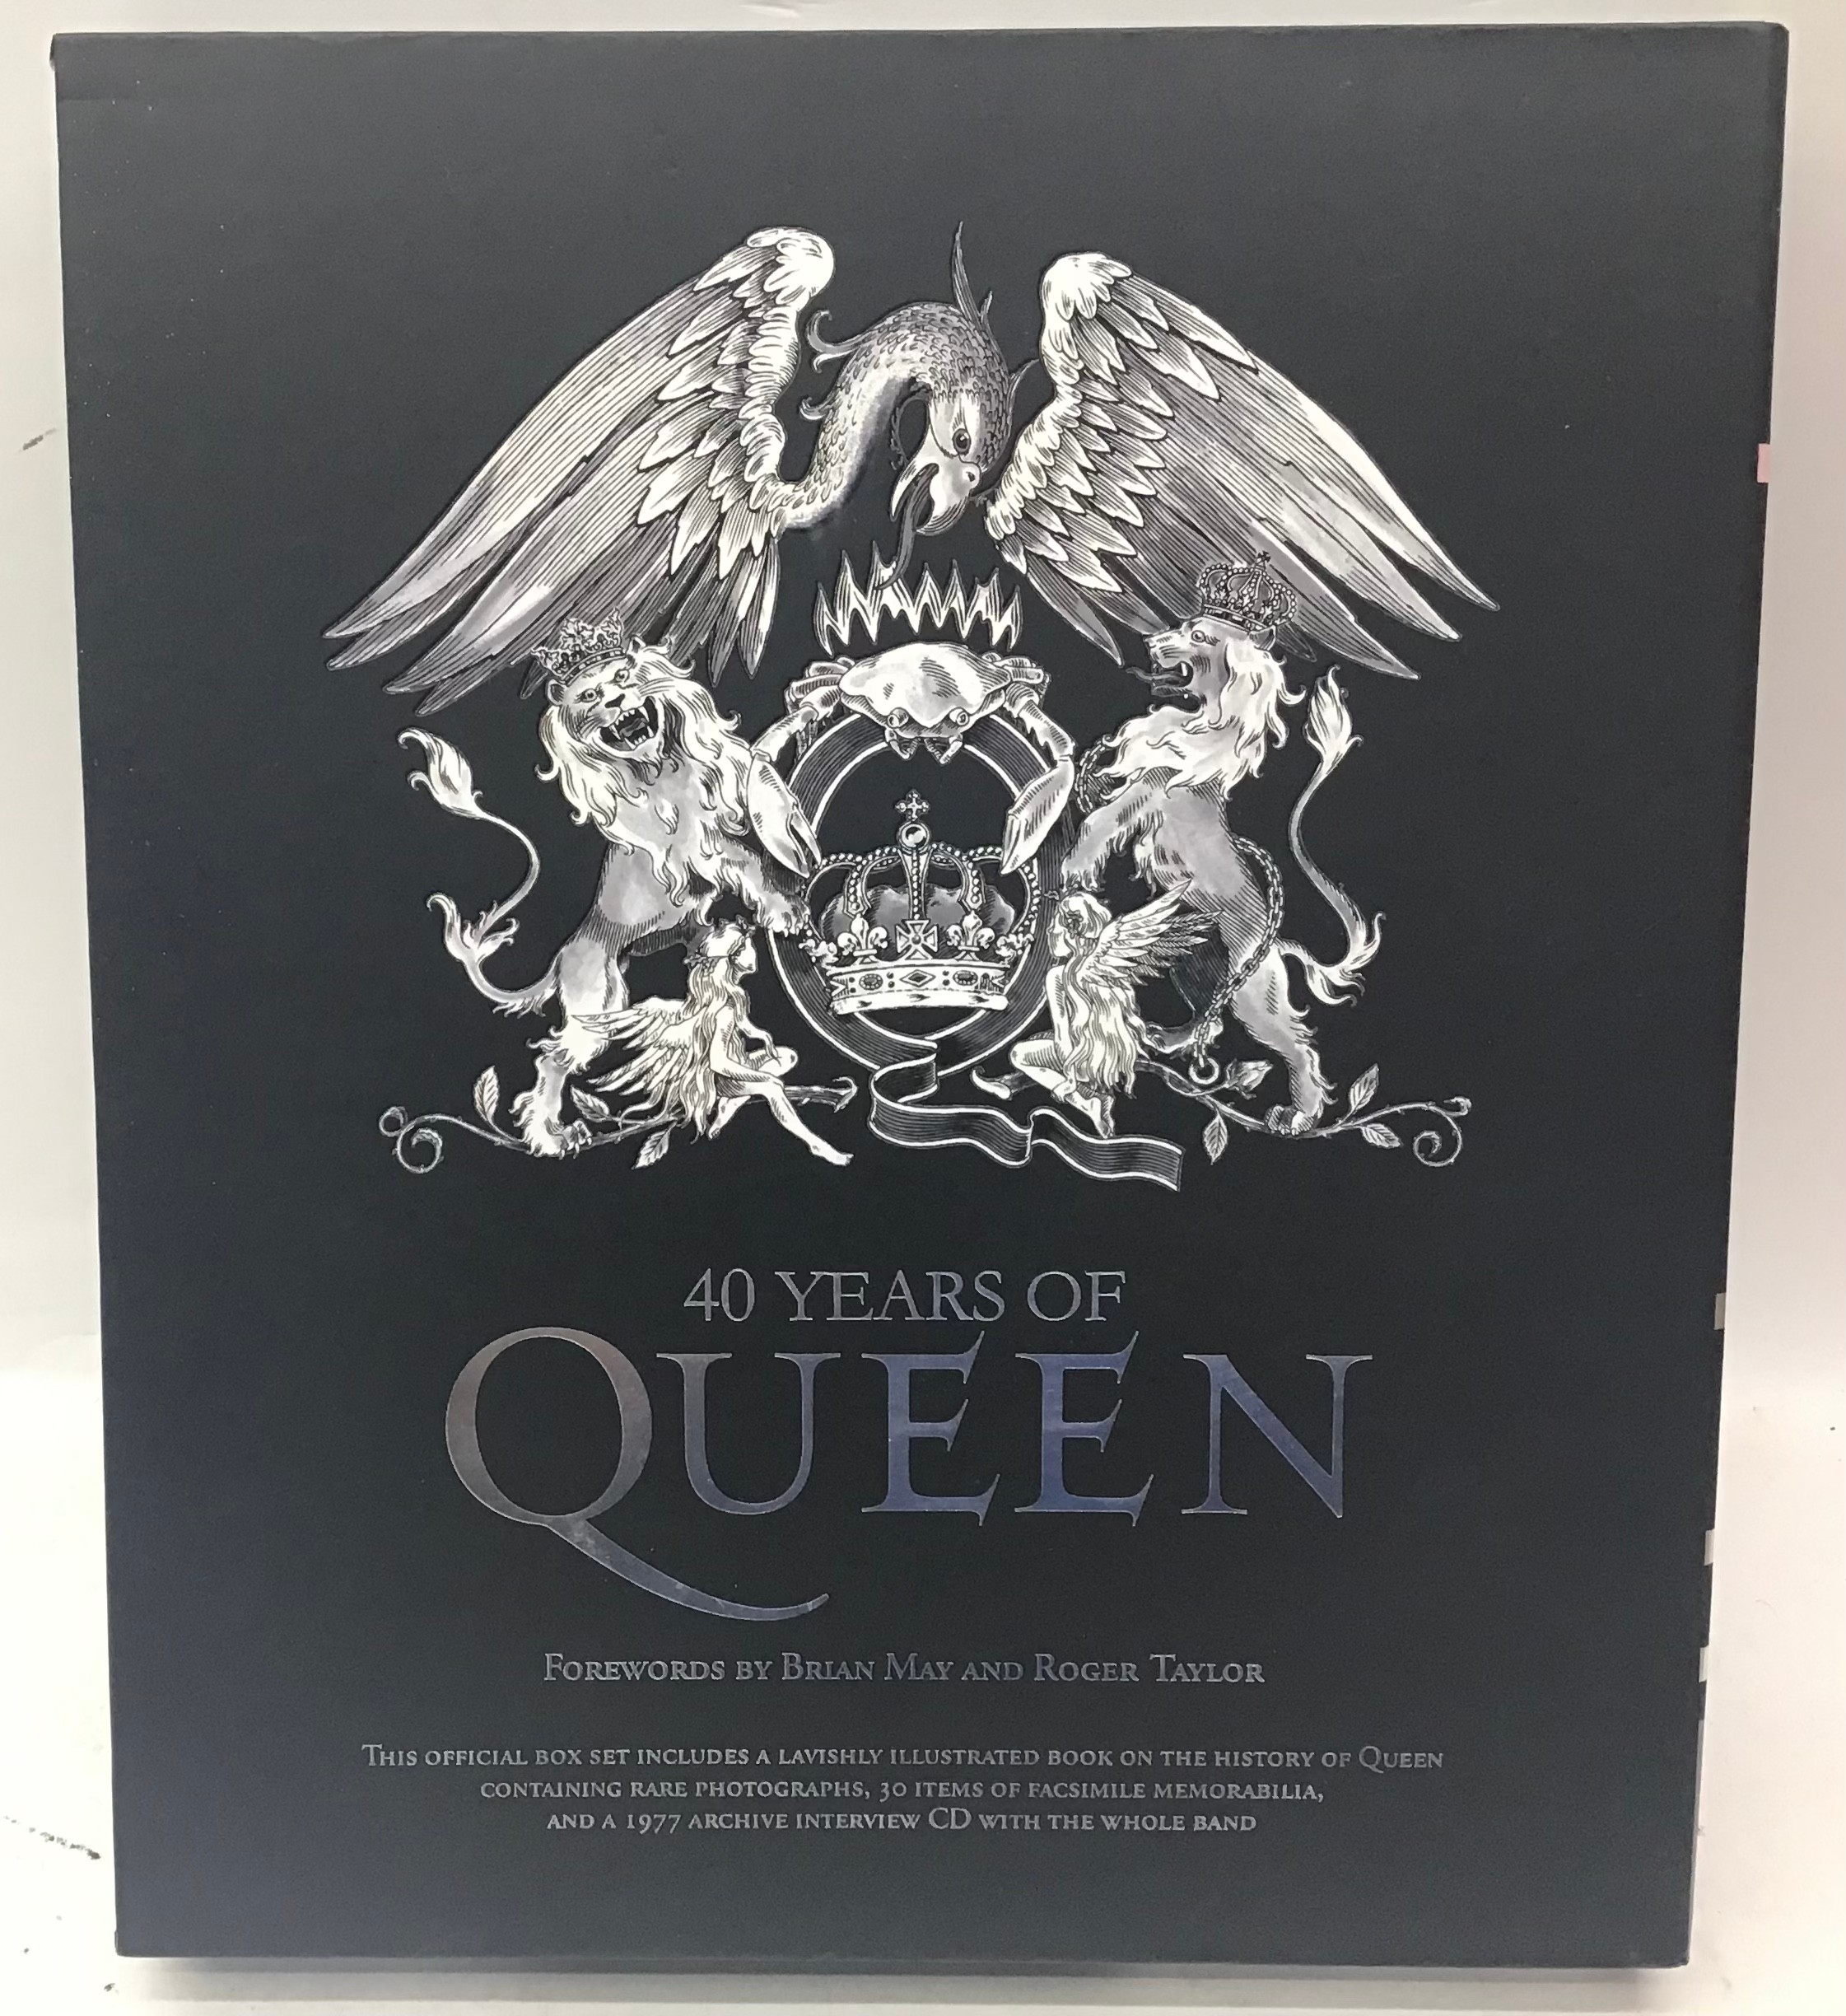 40 YEARS OF QUEEN. The book showcases the band, its members, recordings and concerts through